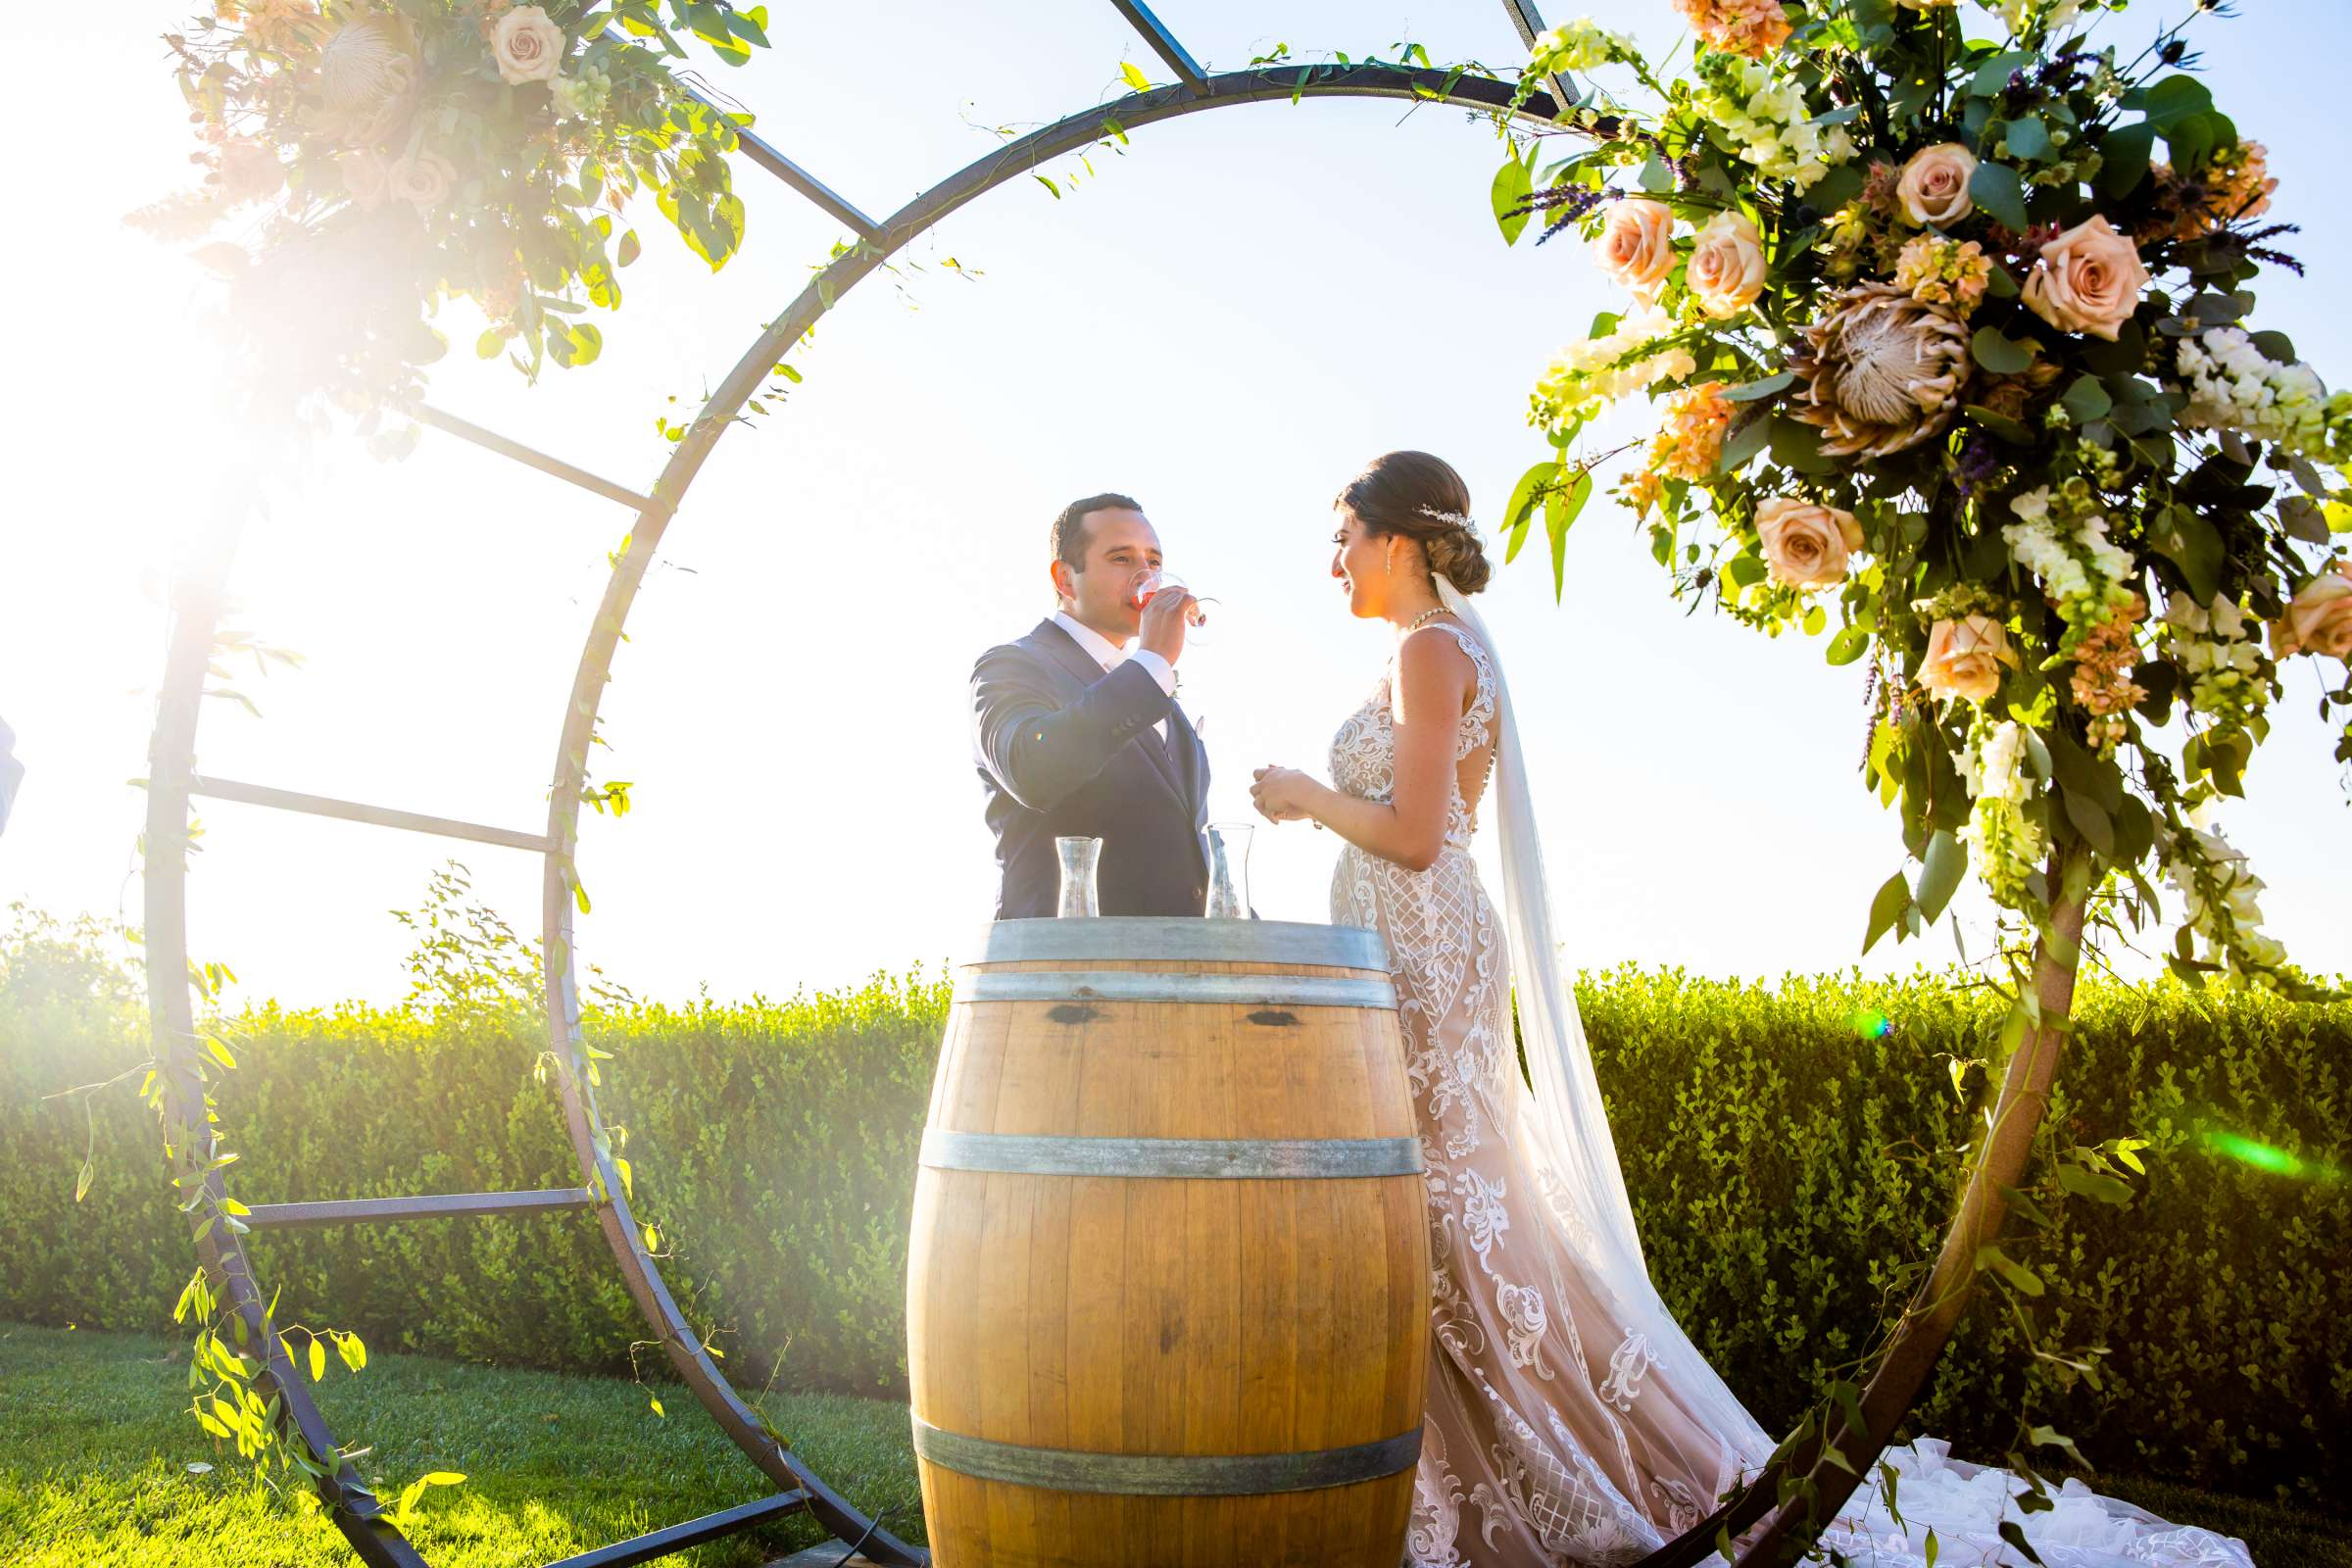 Callaway Vineyards & Winery Wedding coordinated by Michelle Garibay Events, Chelsea and Luis carlos Wedding Photo #99 by True Photography